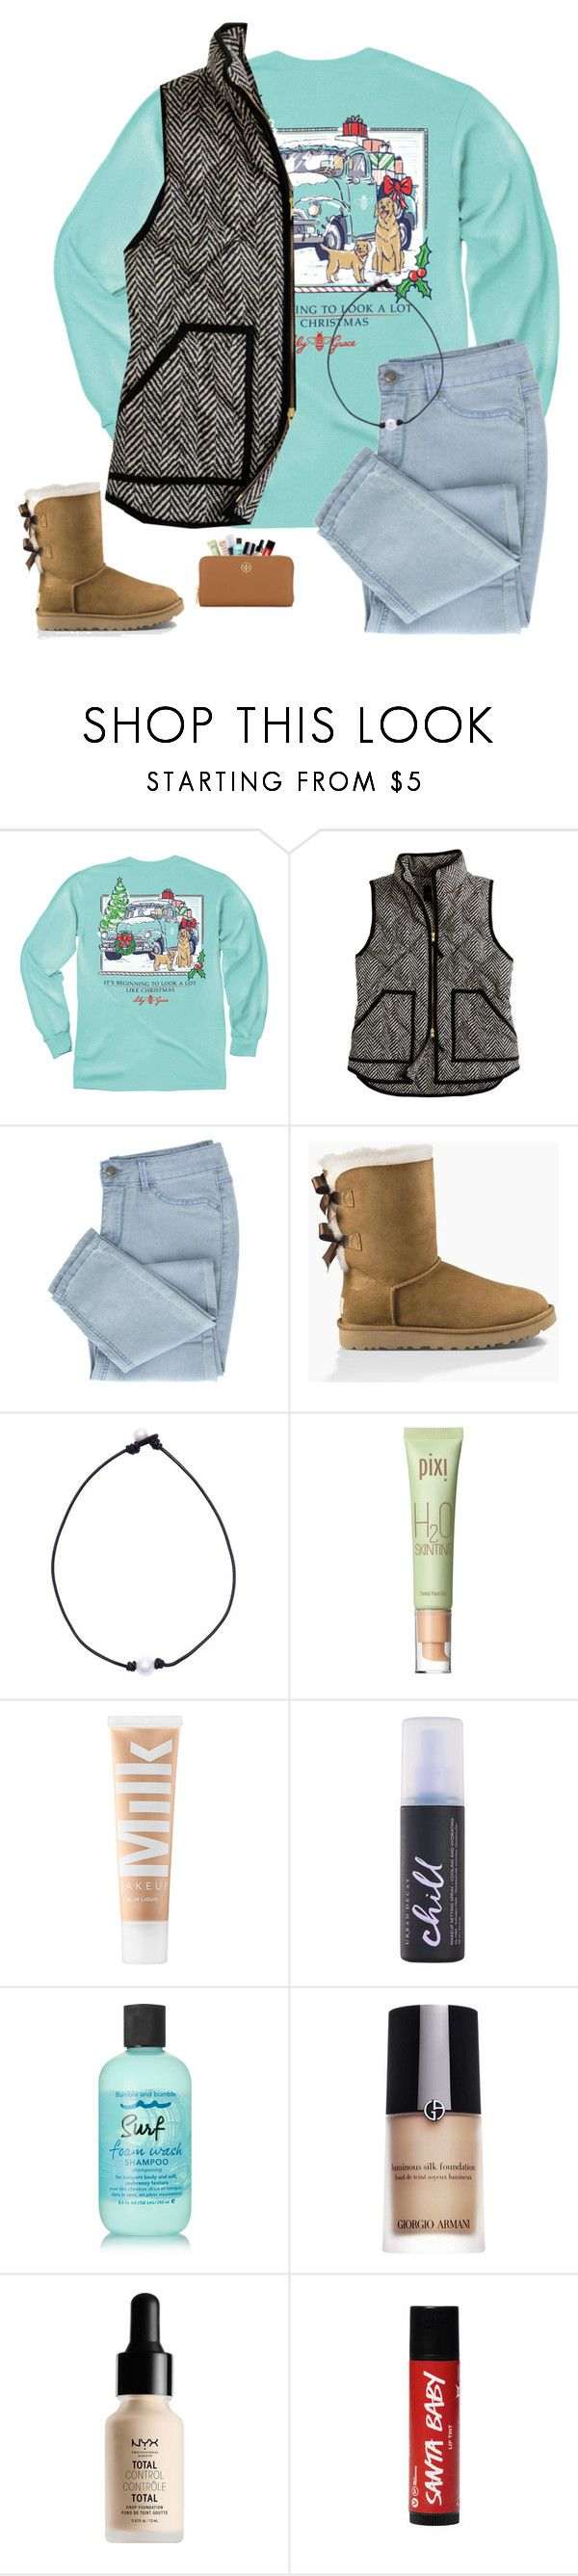 """""""~ rtd rtd rtd ~"""" by southern-preppster ❤ liked on Polyvore featuring J.Crew, UGG Australia, Pixi, MILK MAKEUP, Urban Decay, Bumble and bumble, Giorgio Armani, NYX, Tory Burch and audssouthernchristmas"""